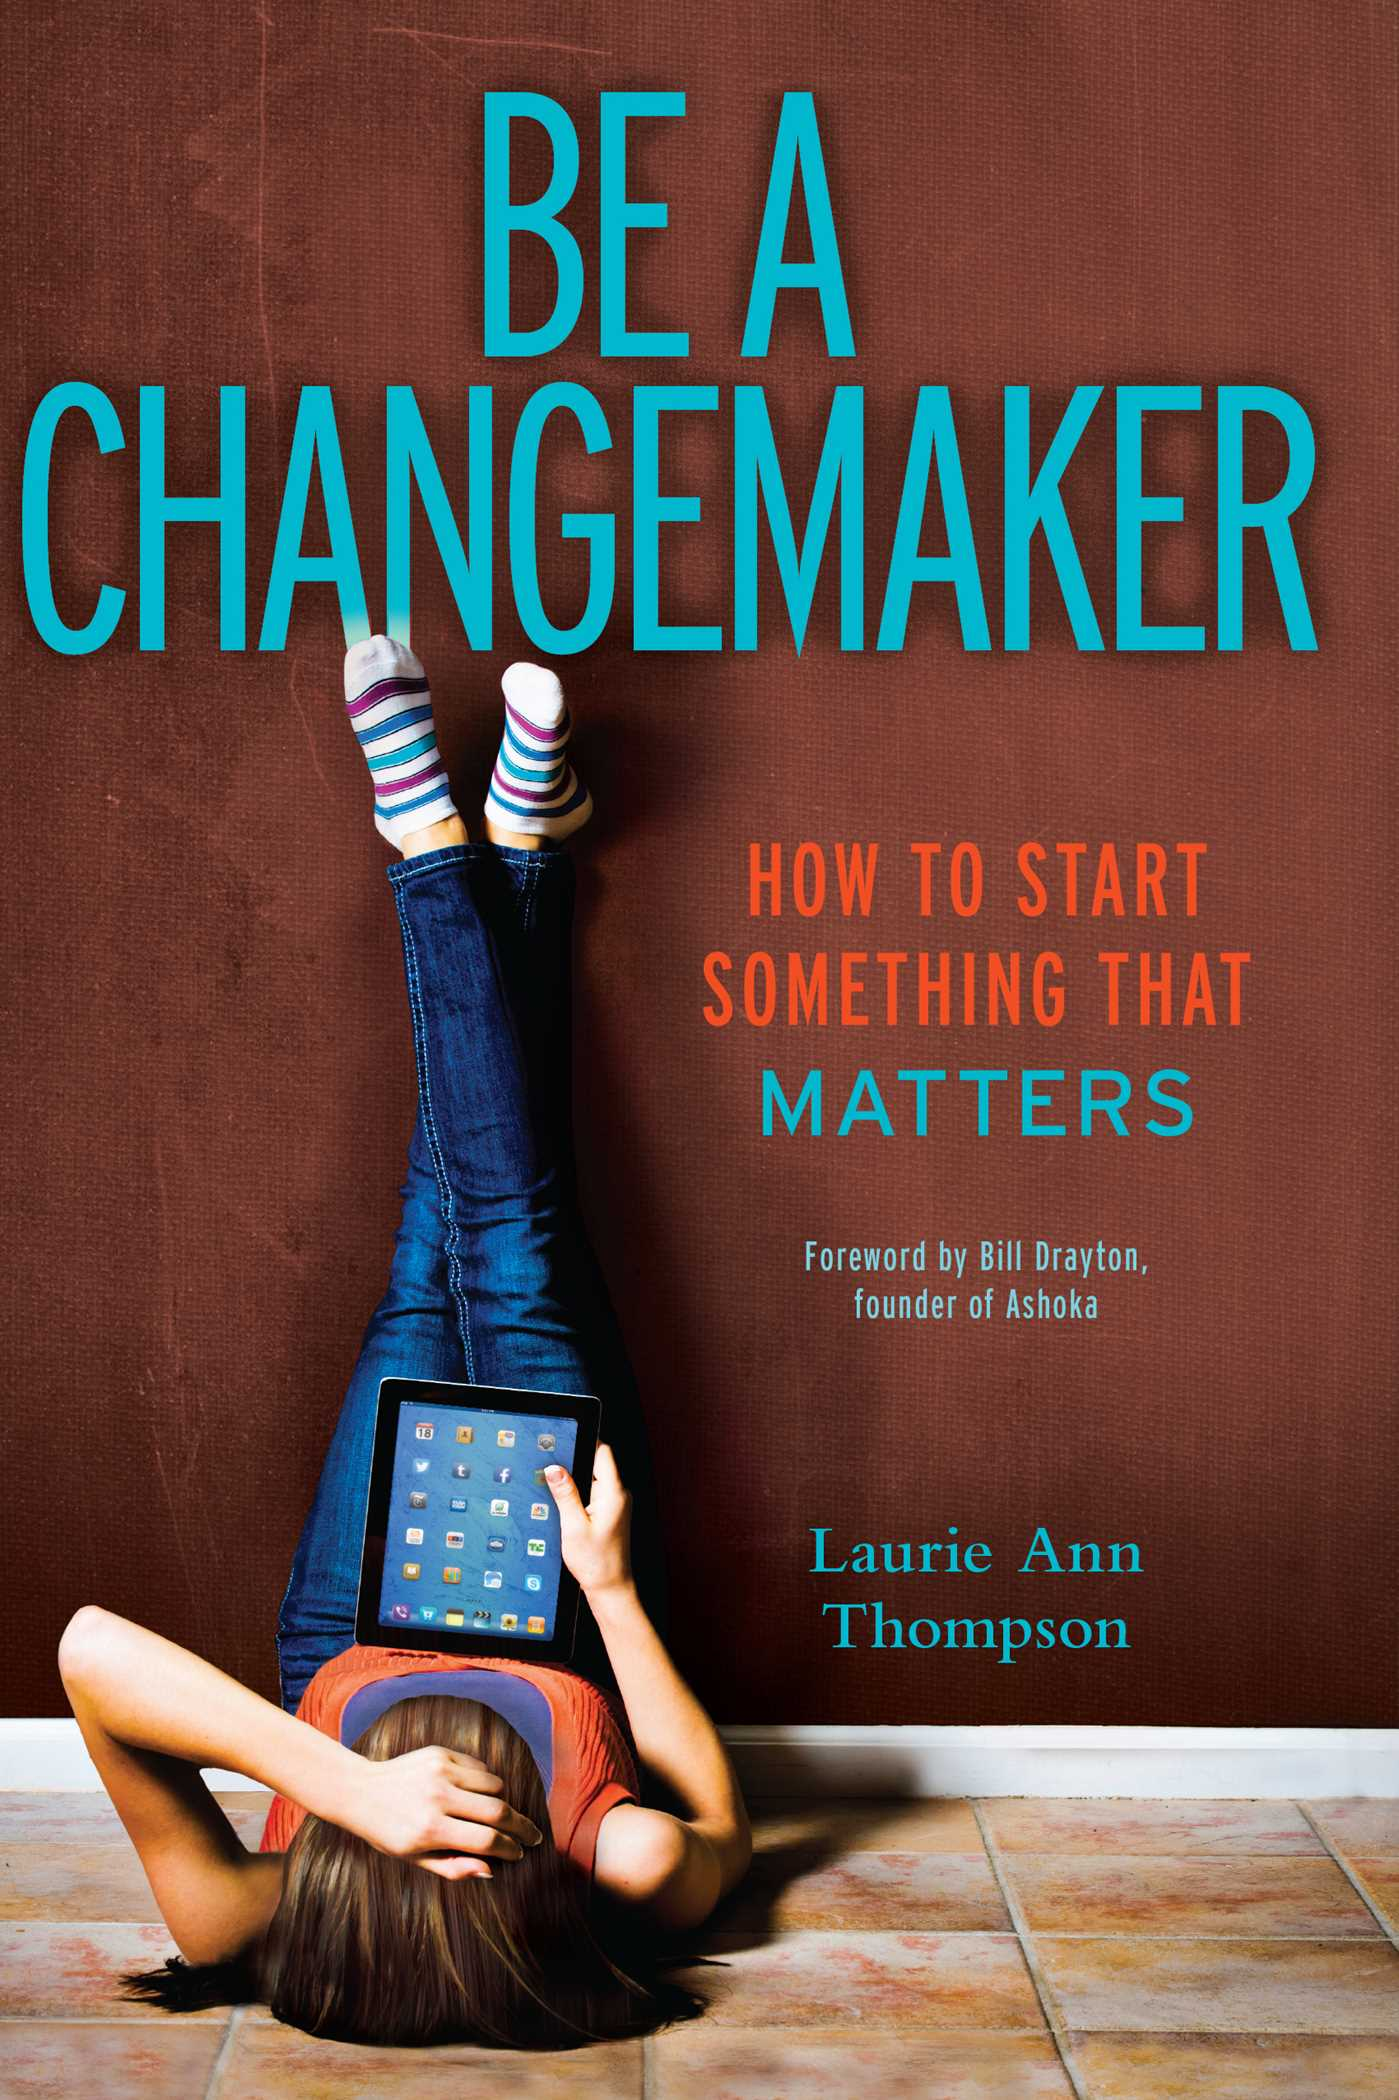 Be-a-changemaker-9781582704647_hr